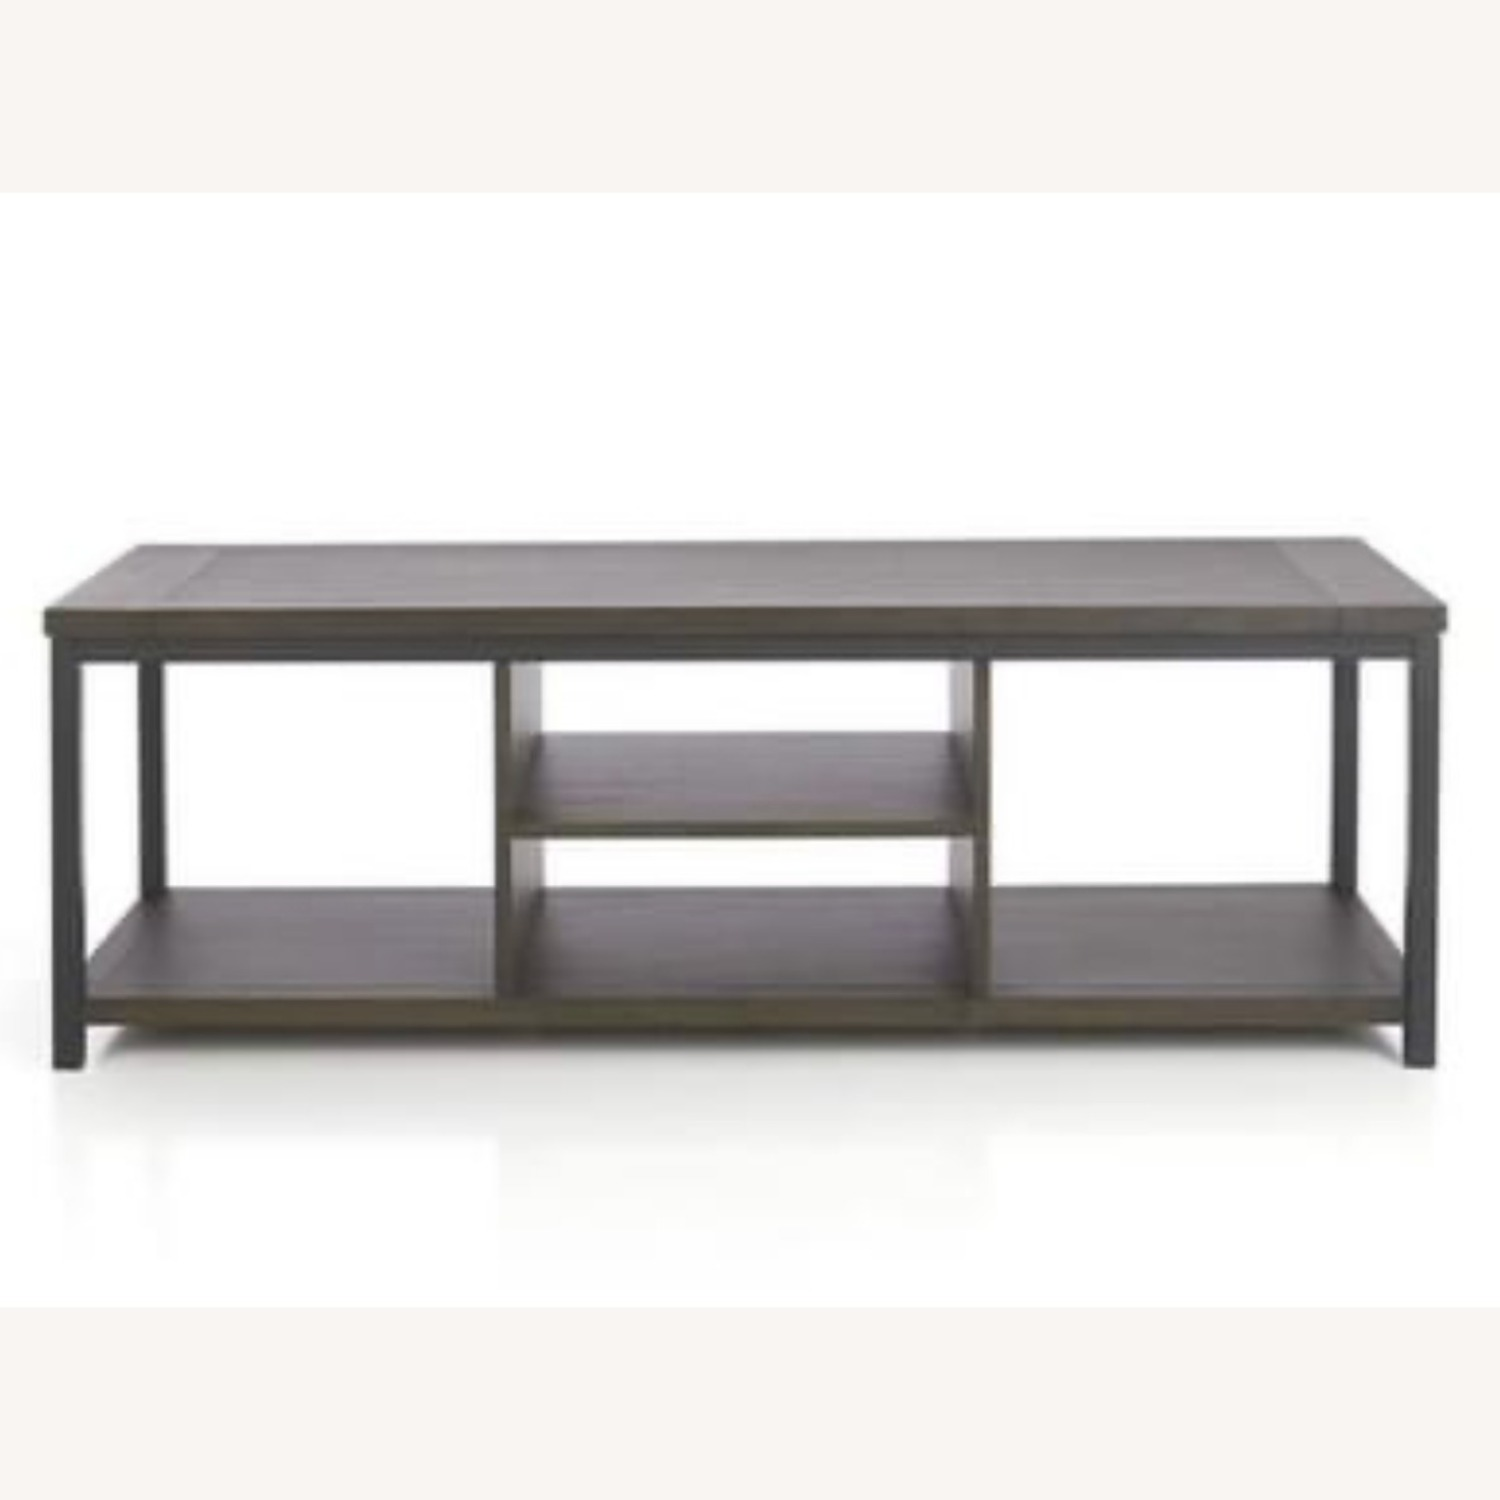 Crate and Barrel Media Stand - image-2